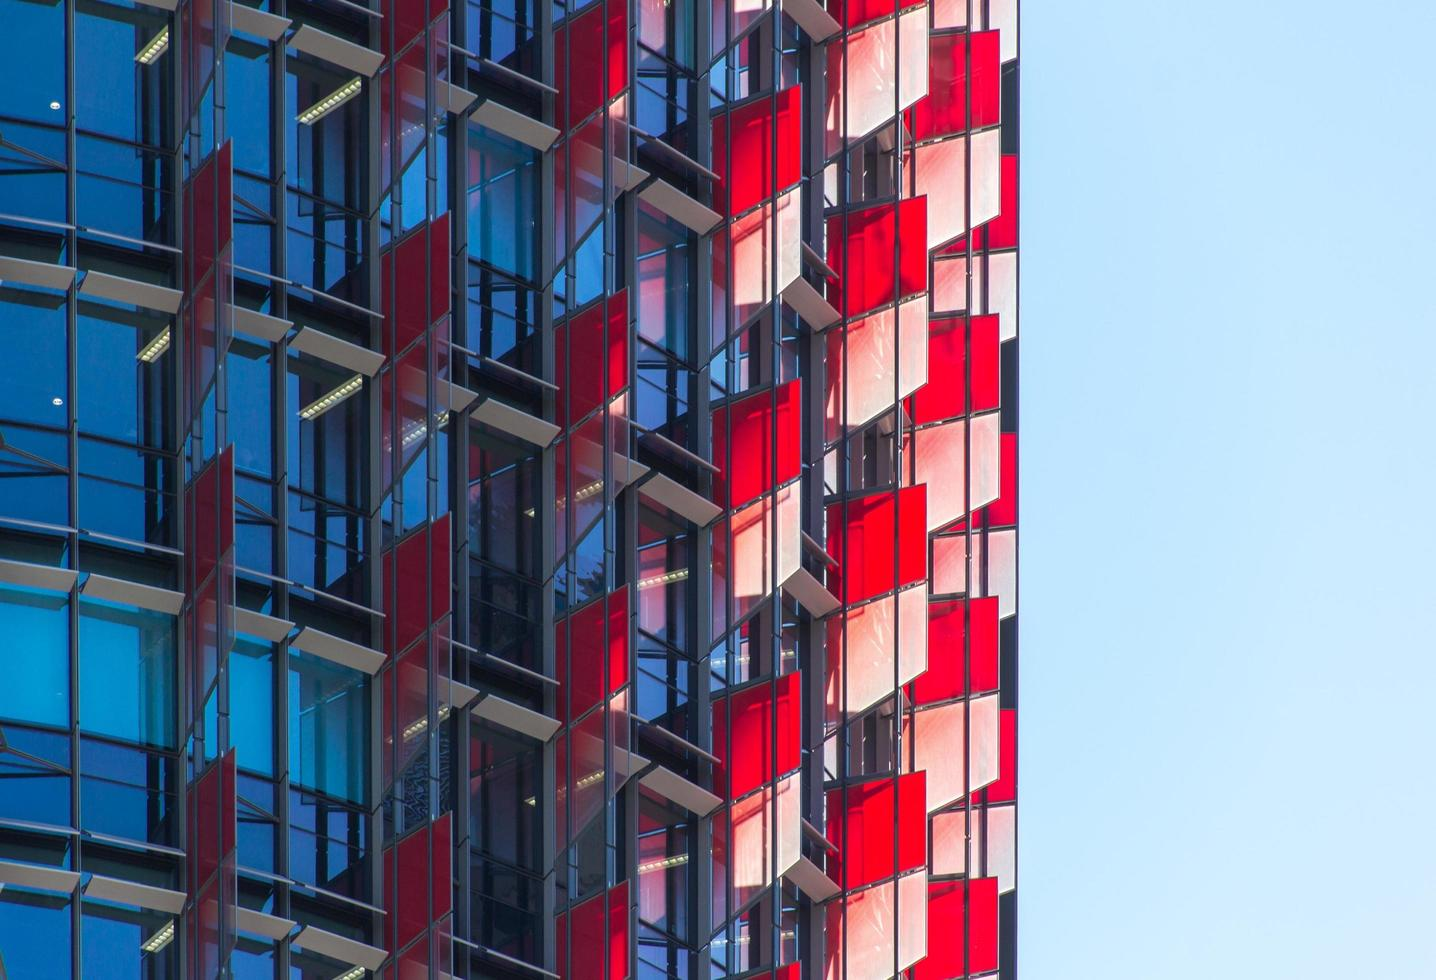 Barangaroo, Australia, 2020 - Building with red and white stained glass panels photo